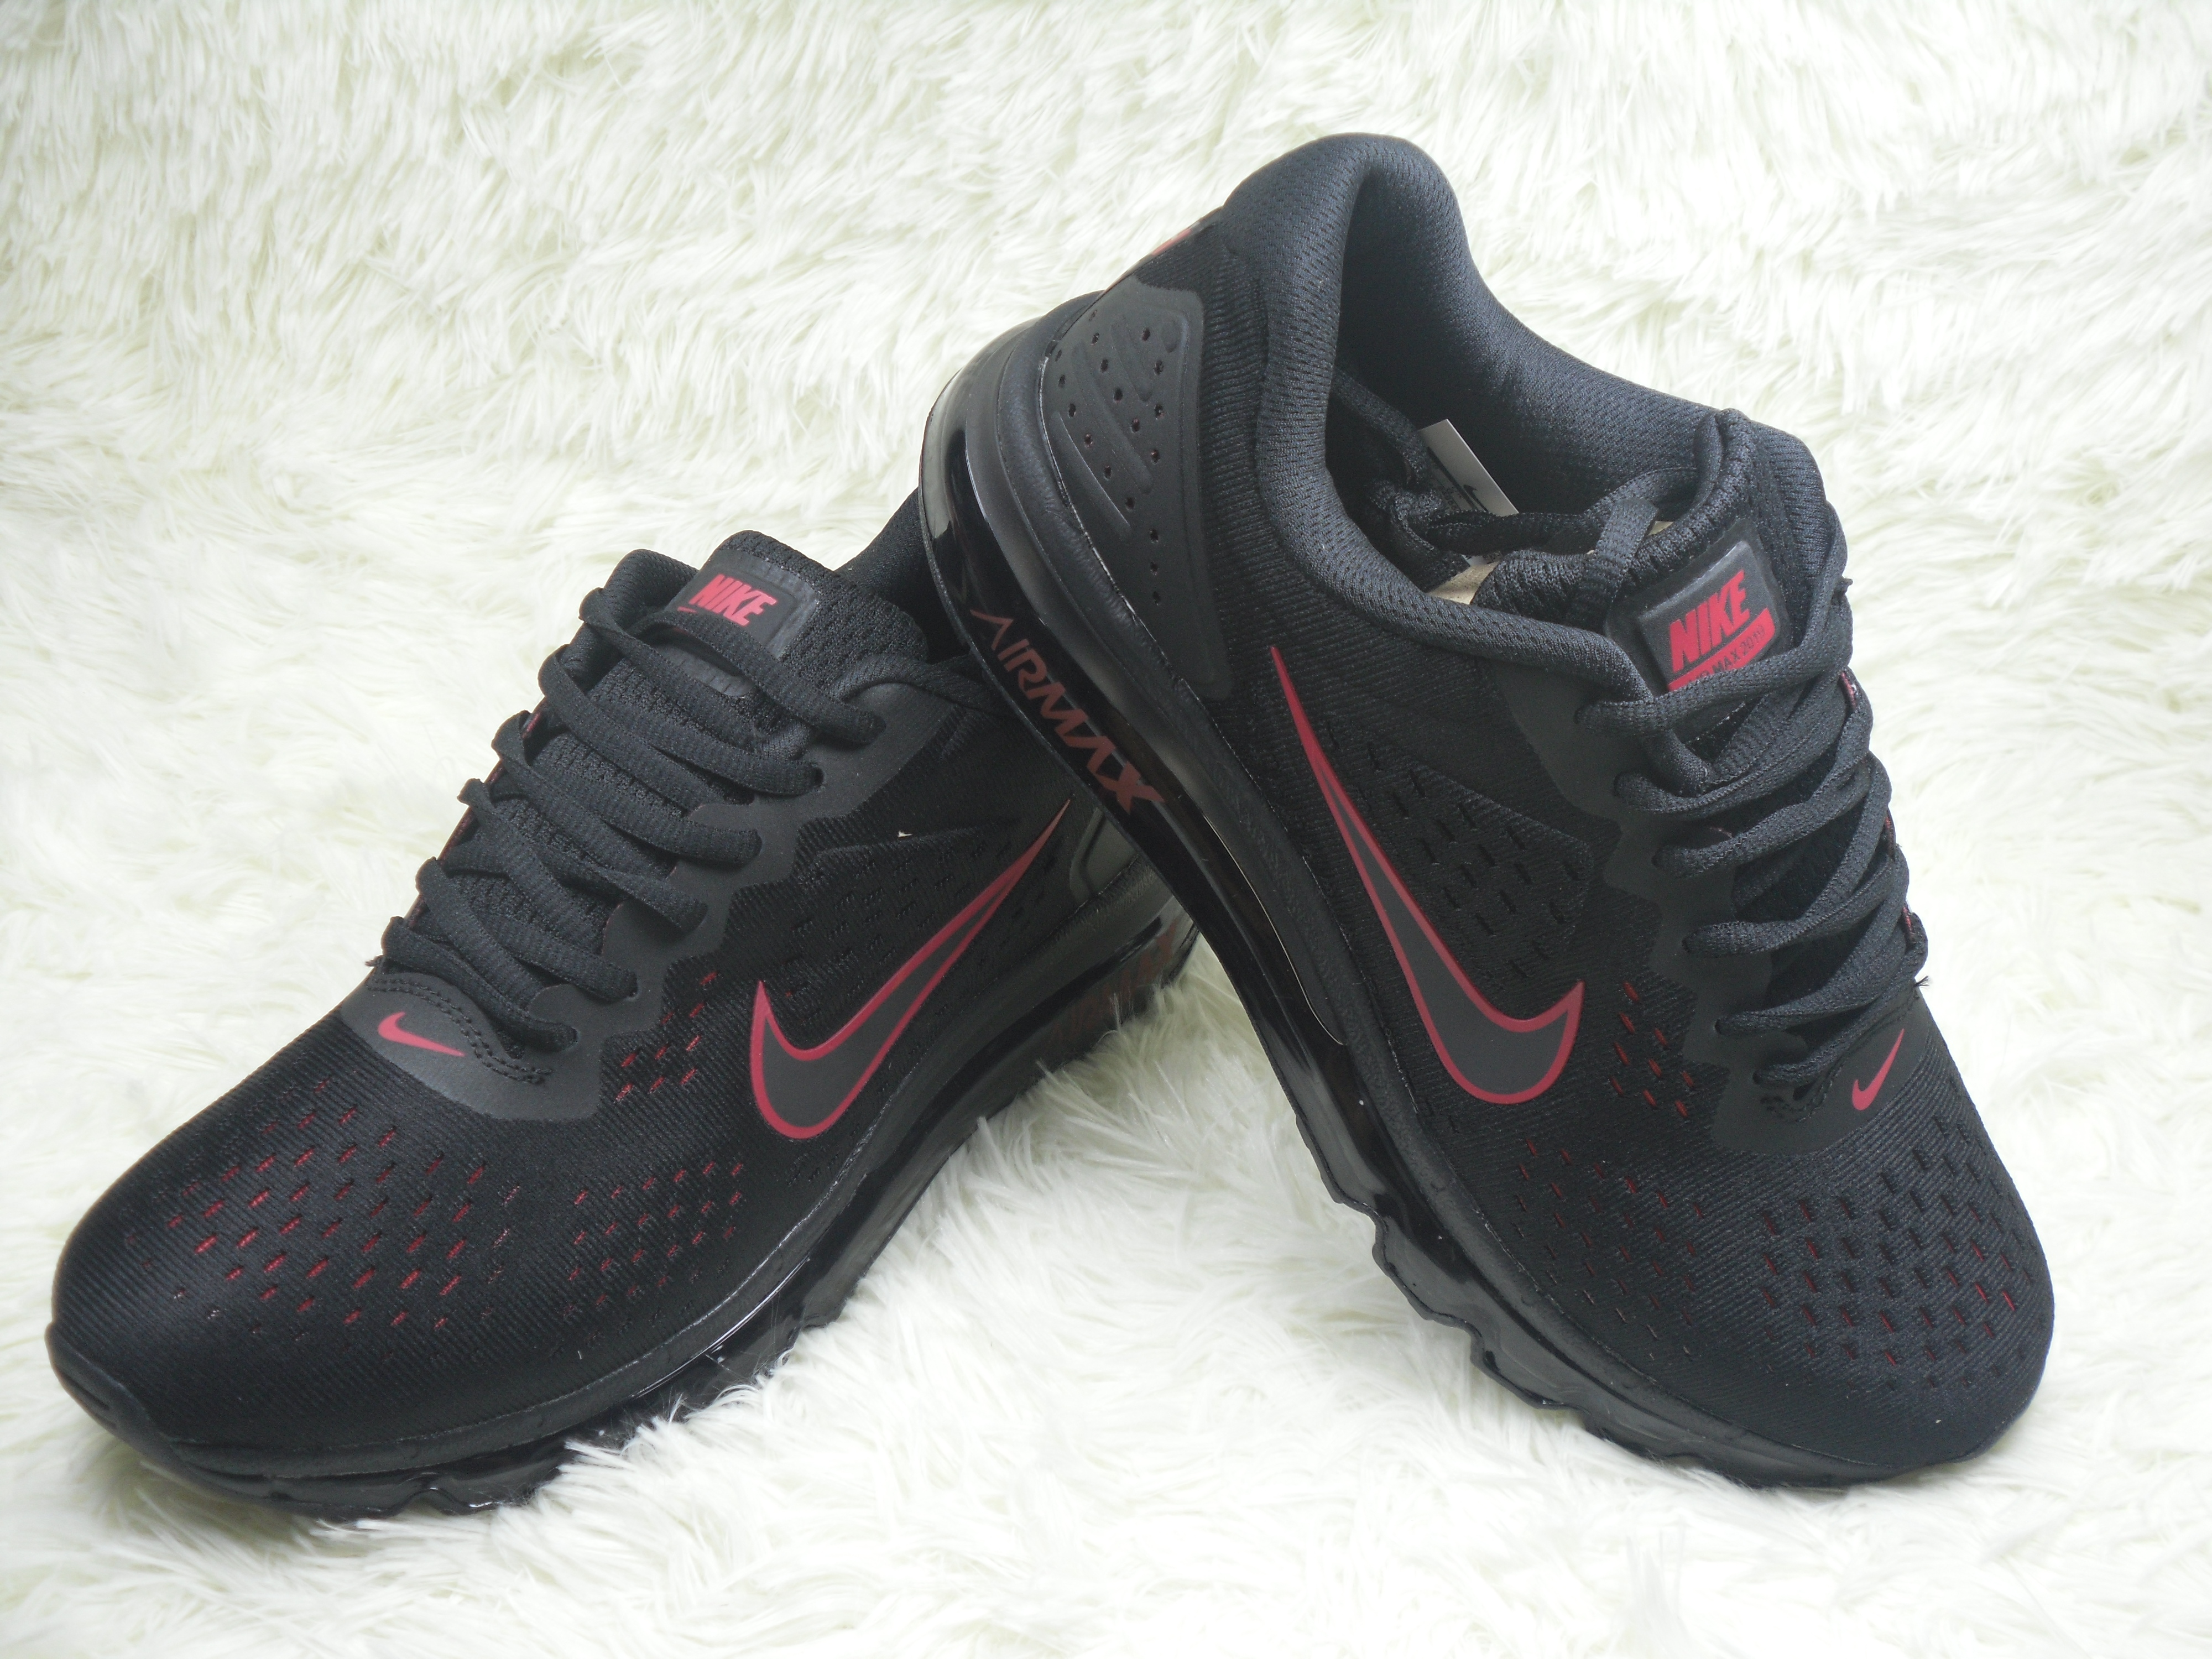 New Nike Air Max 2019 Black Pink